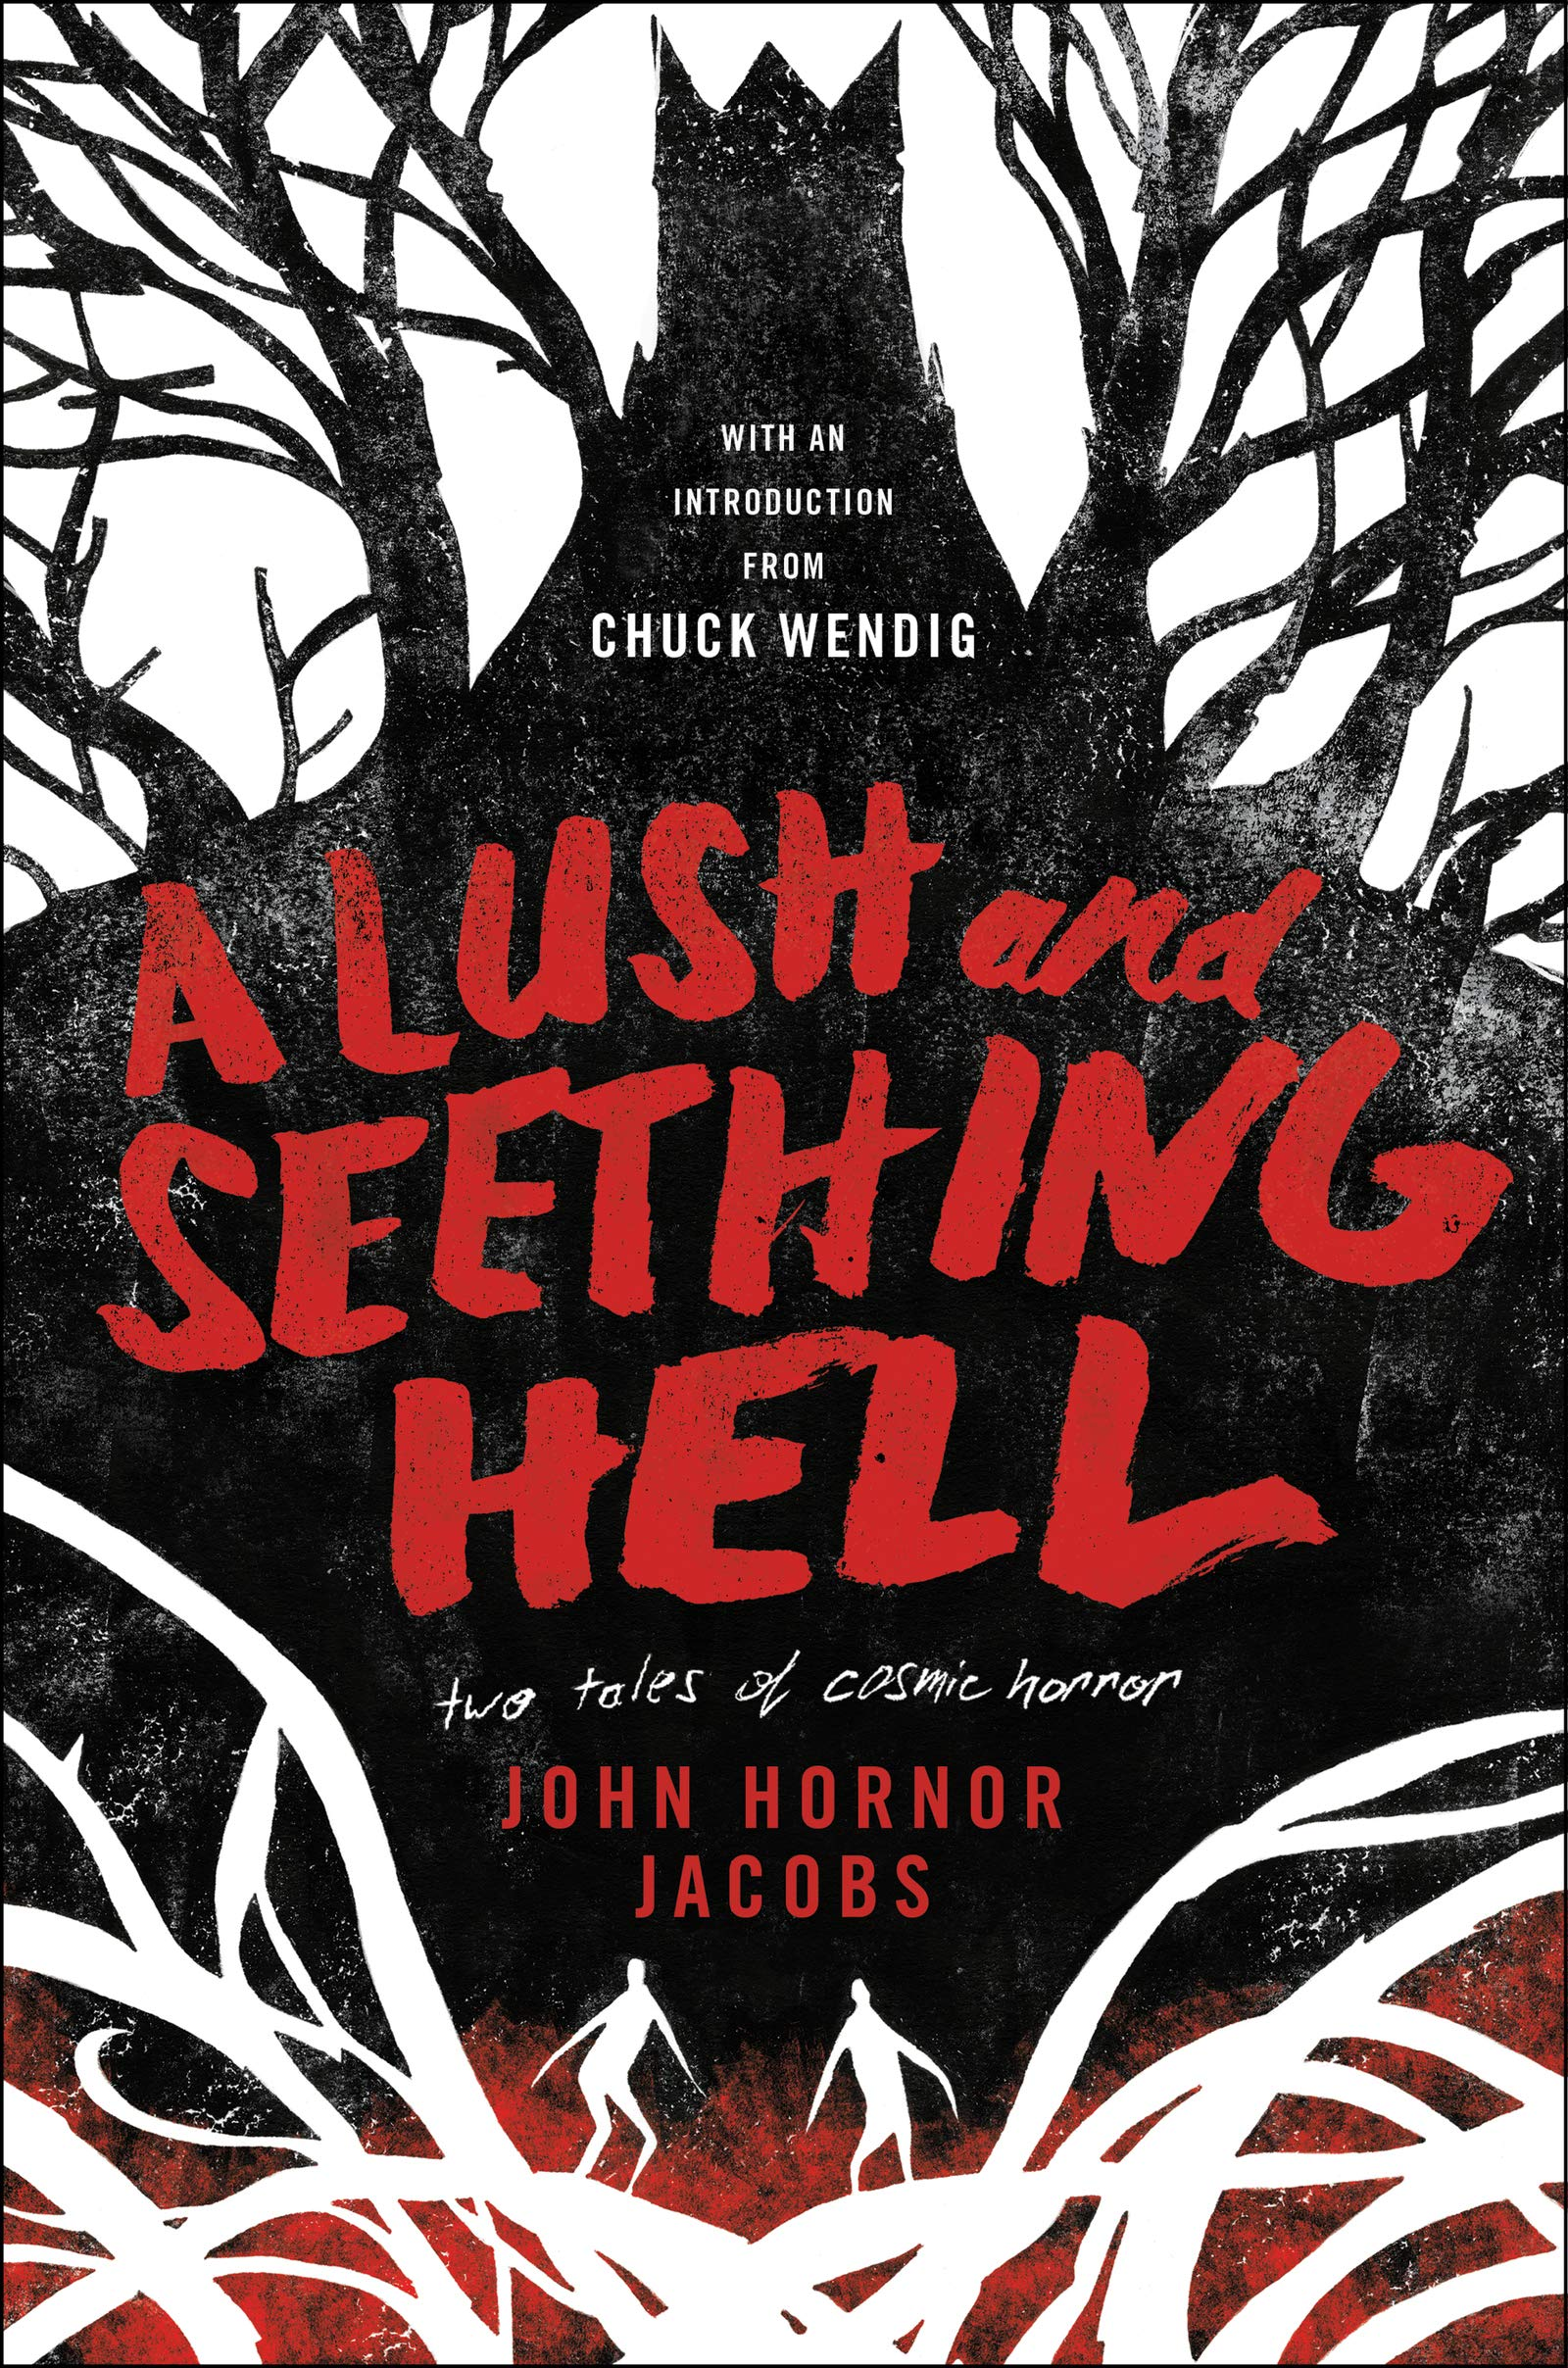 John Hornor Jacobs: Five Things I Learned Writing A Lush And Seething Hell